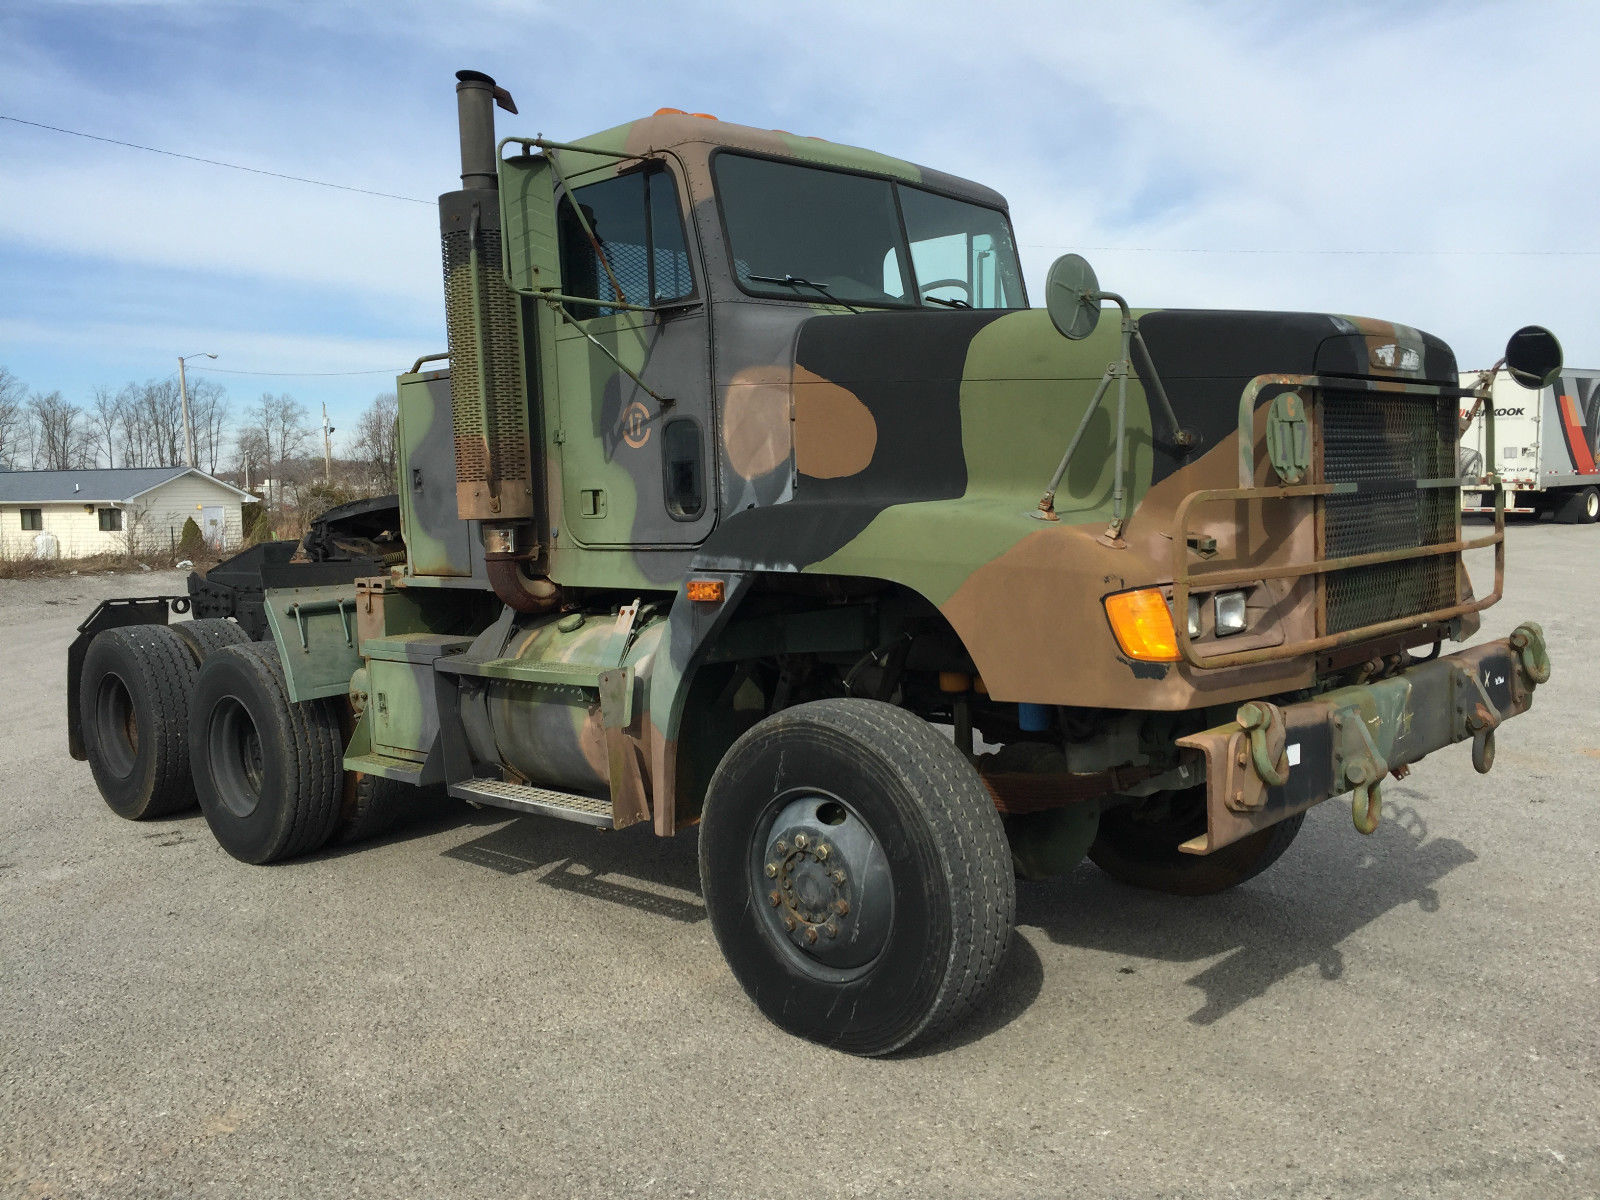 1992 Freightliner M916a1 LET Tractor Military Heavy Haul